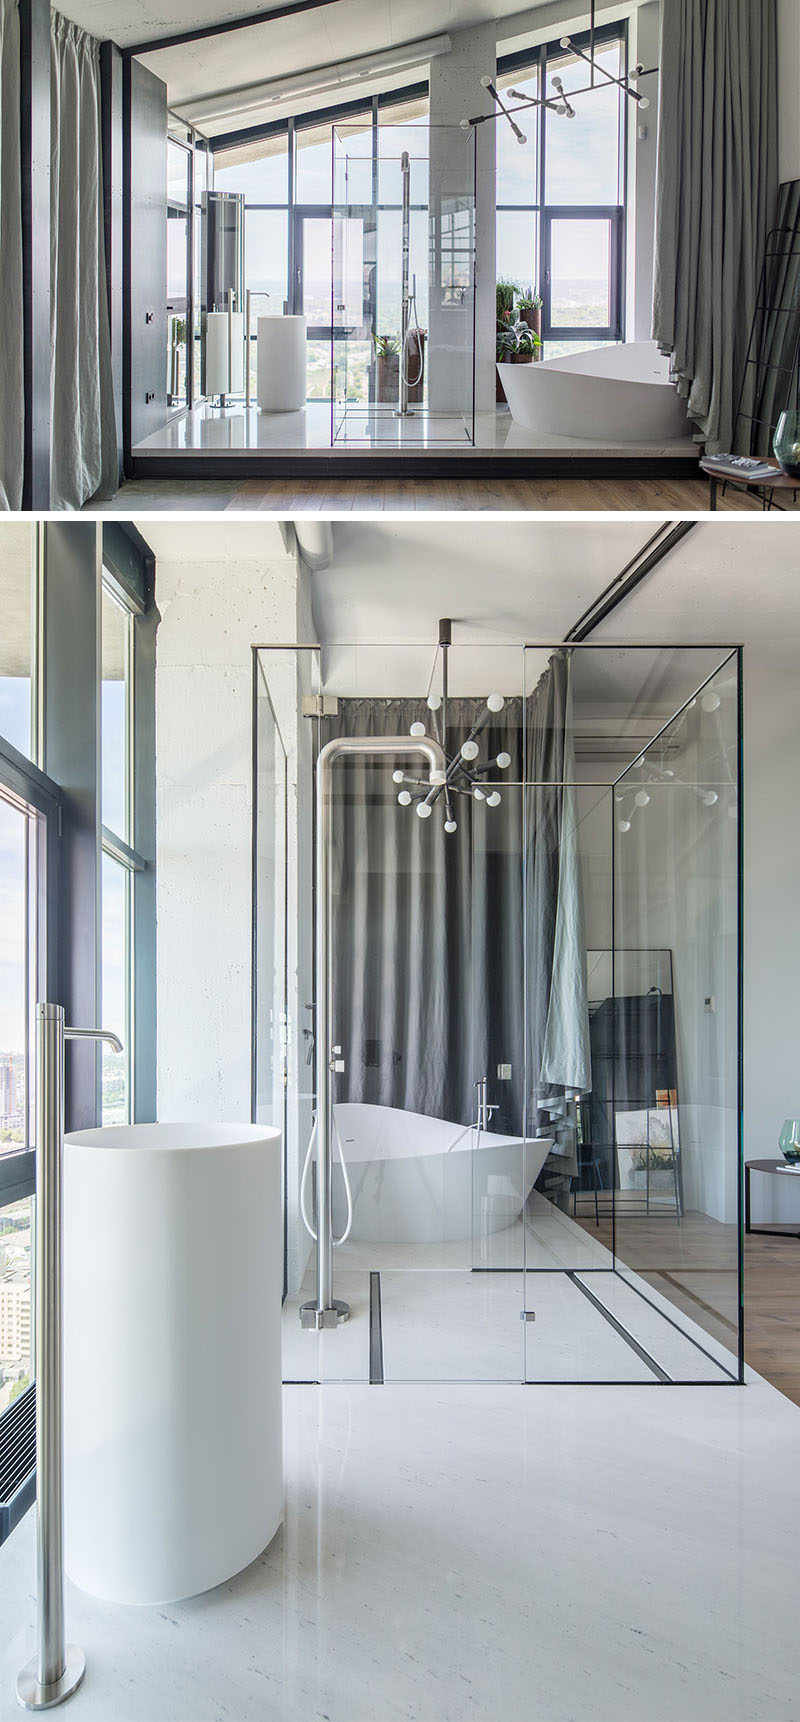 This modern ensuite bathroom, which is raised up onto a platform, makes the most of the view with floor to ceiling windows, and a glass shower surround. When some privacy is needed, there's also a curtain that can be pulled across. #EnsuiteBathroom #ModernBathroom #GlassShowerEnclosure